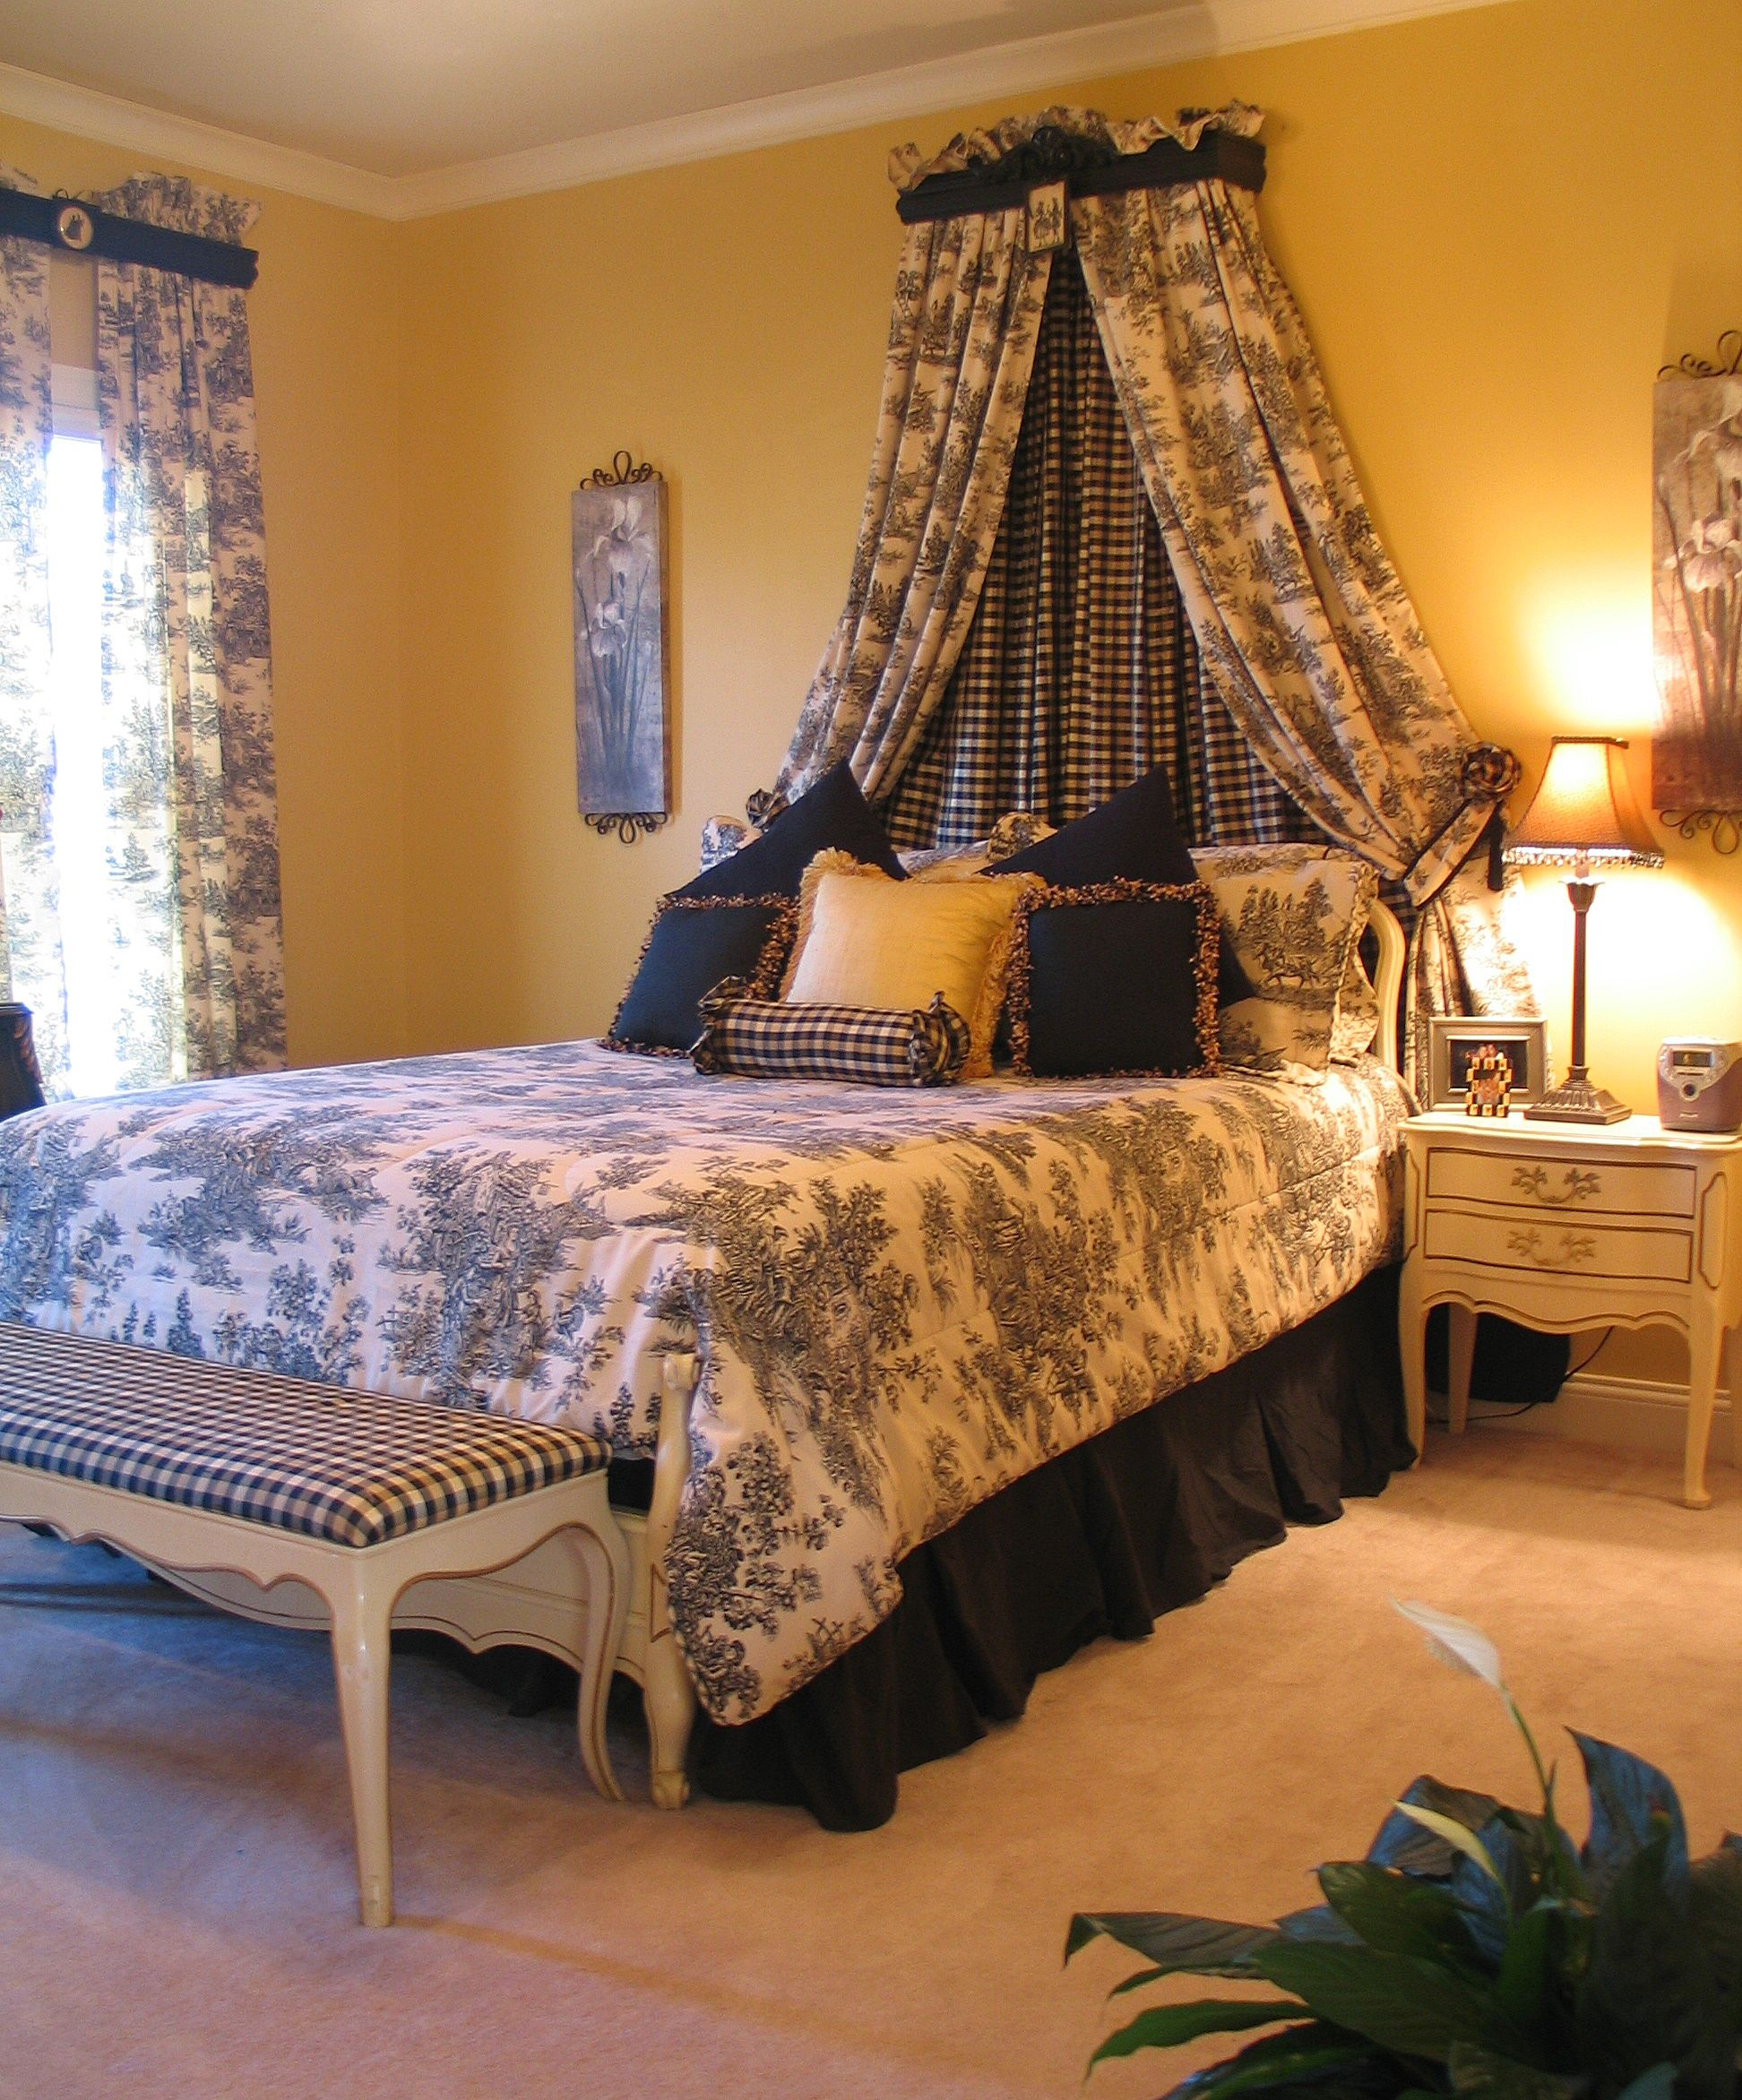 Best Black And White Toile Bedroom Bedroom Decor Home 400 x 300